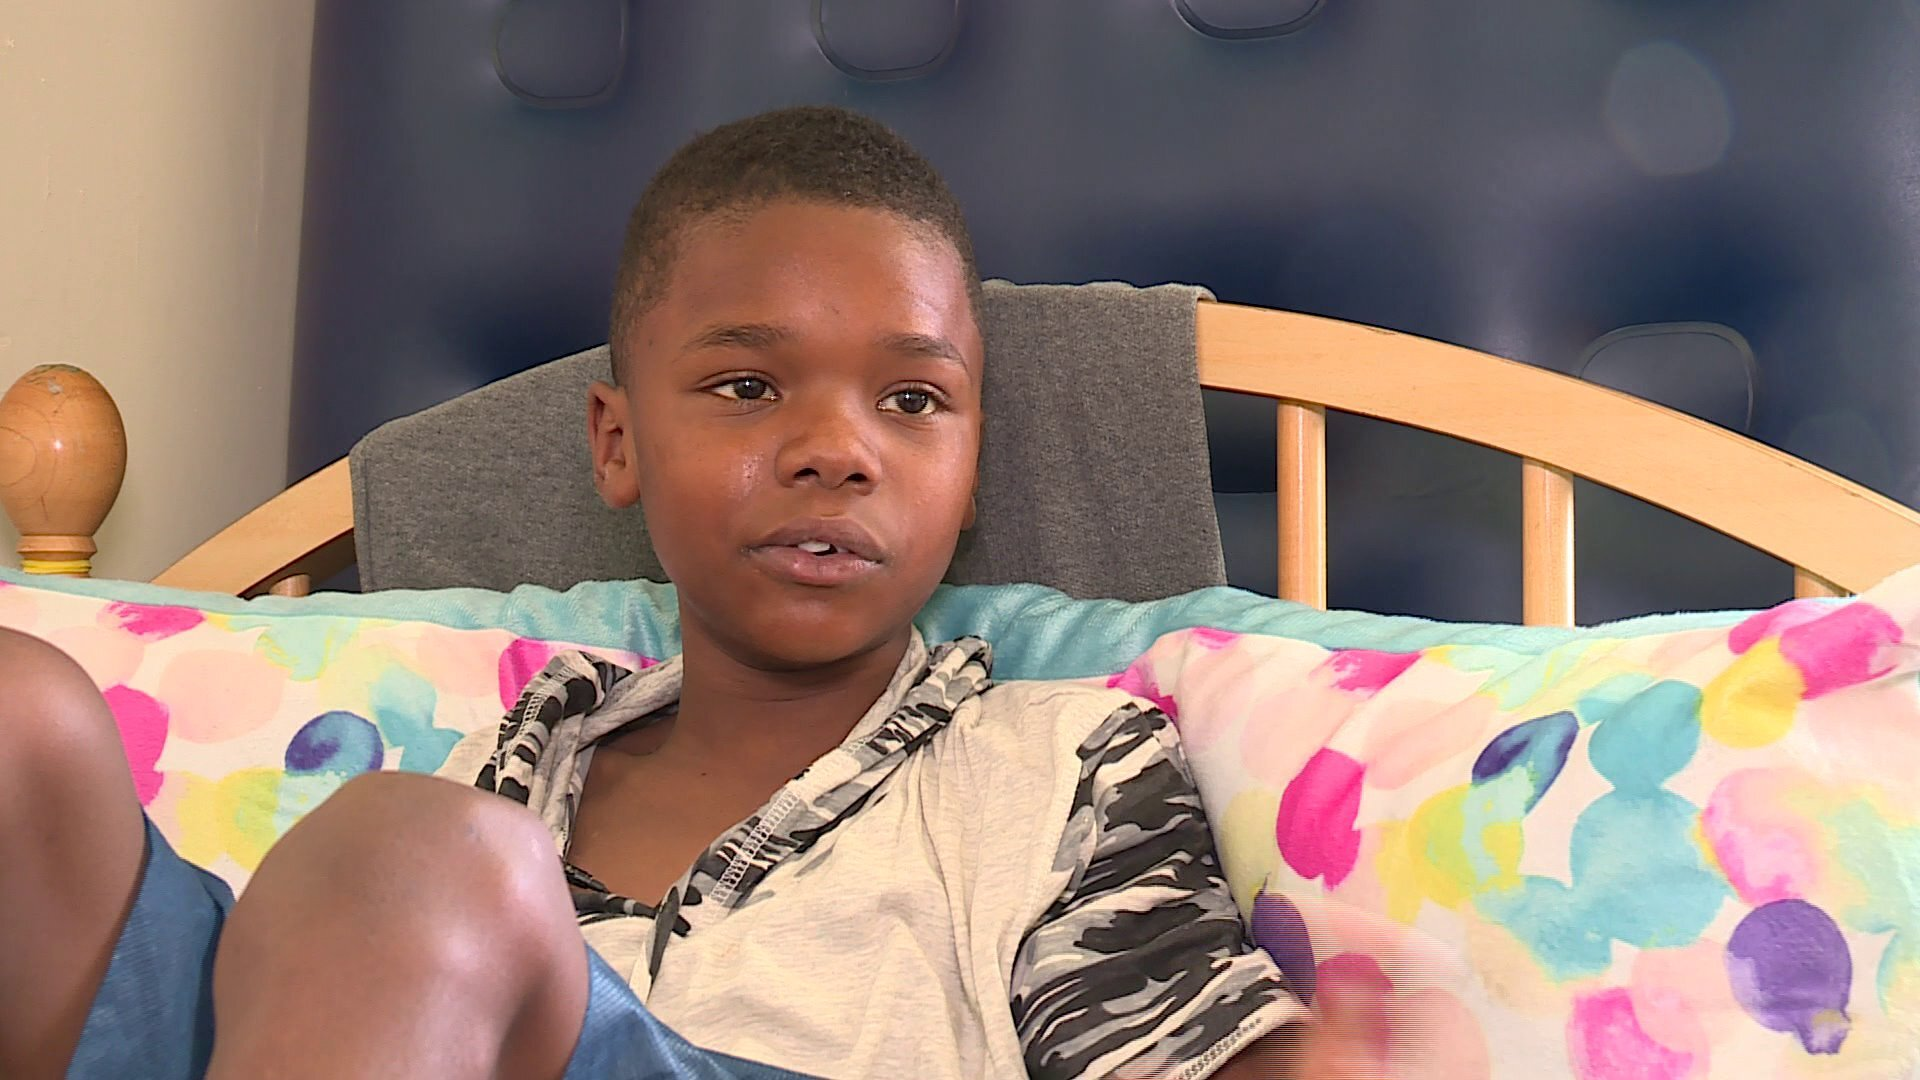 Photos: 12-year-old shot at Buckroe Beach speaks out: 'They didn't expect me to live'